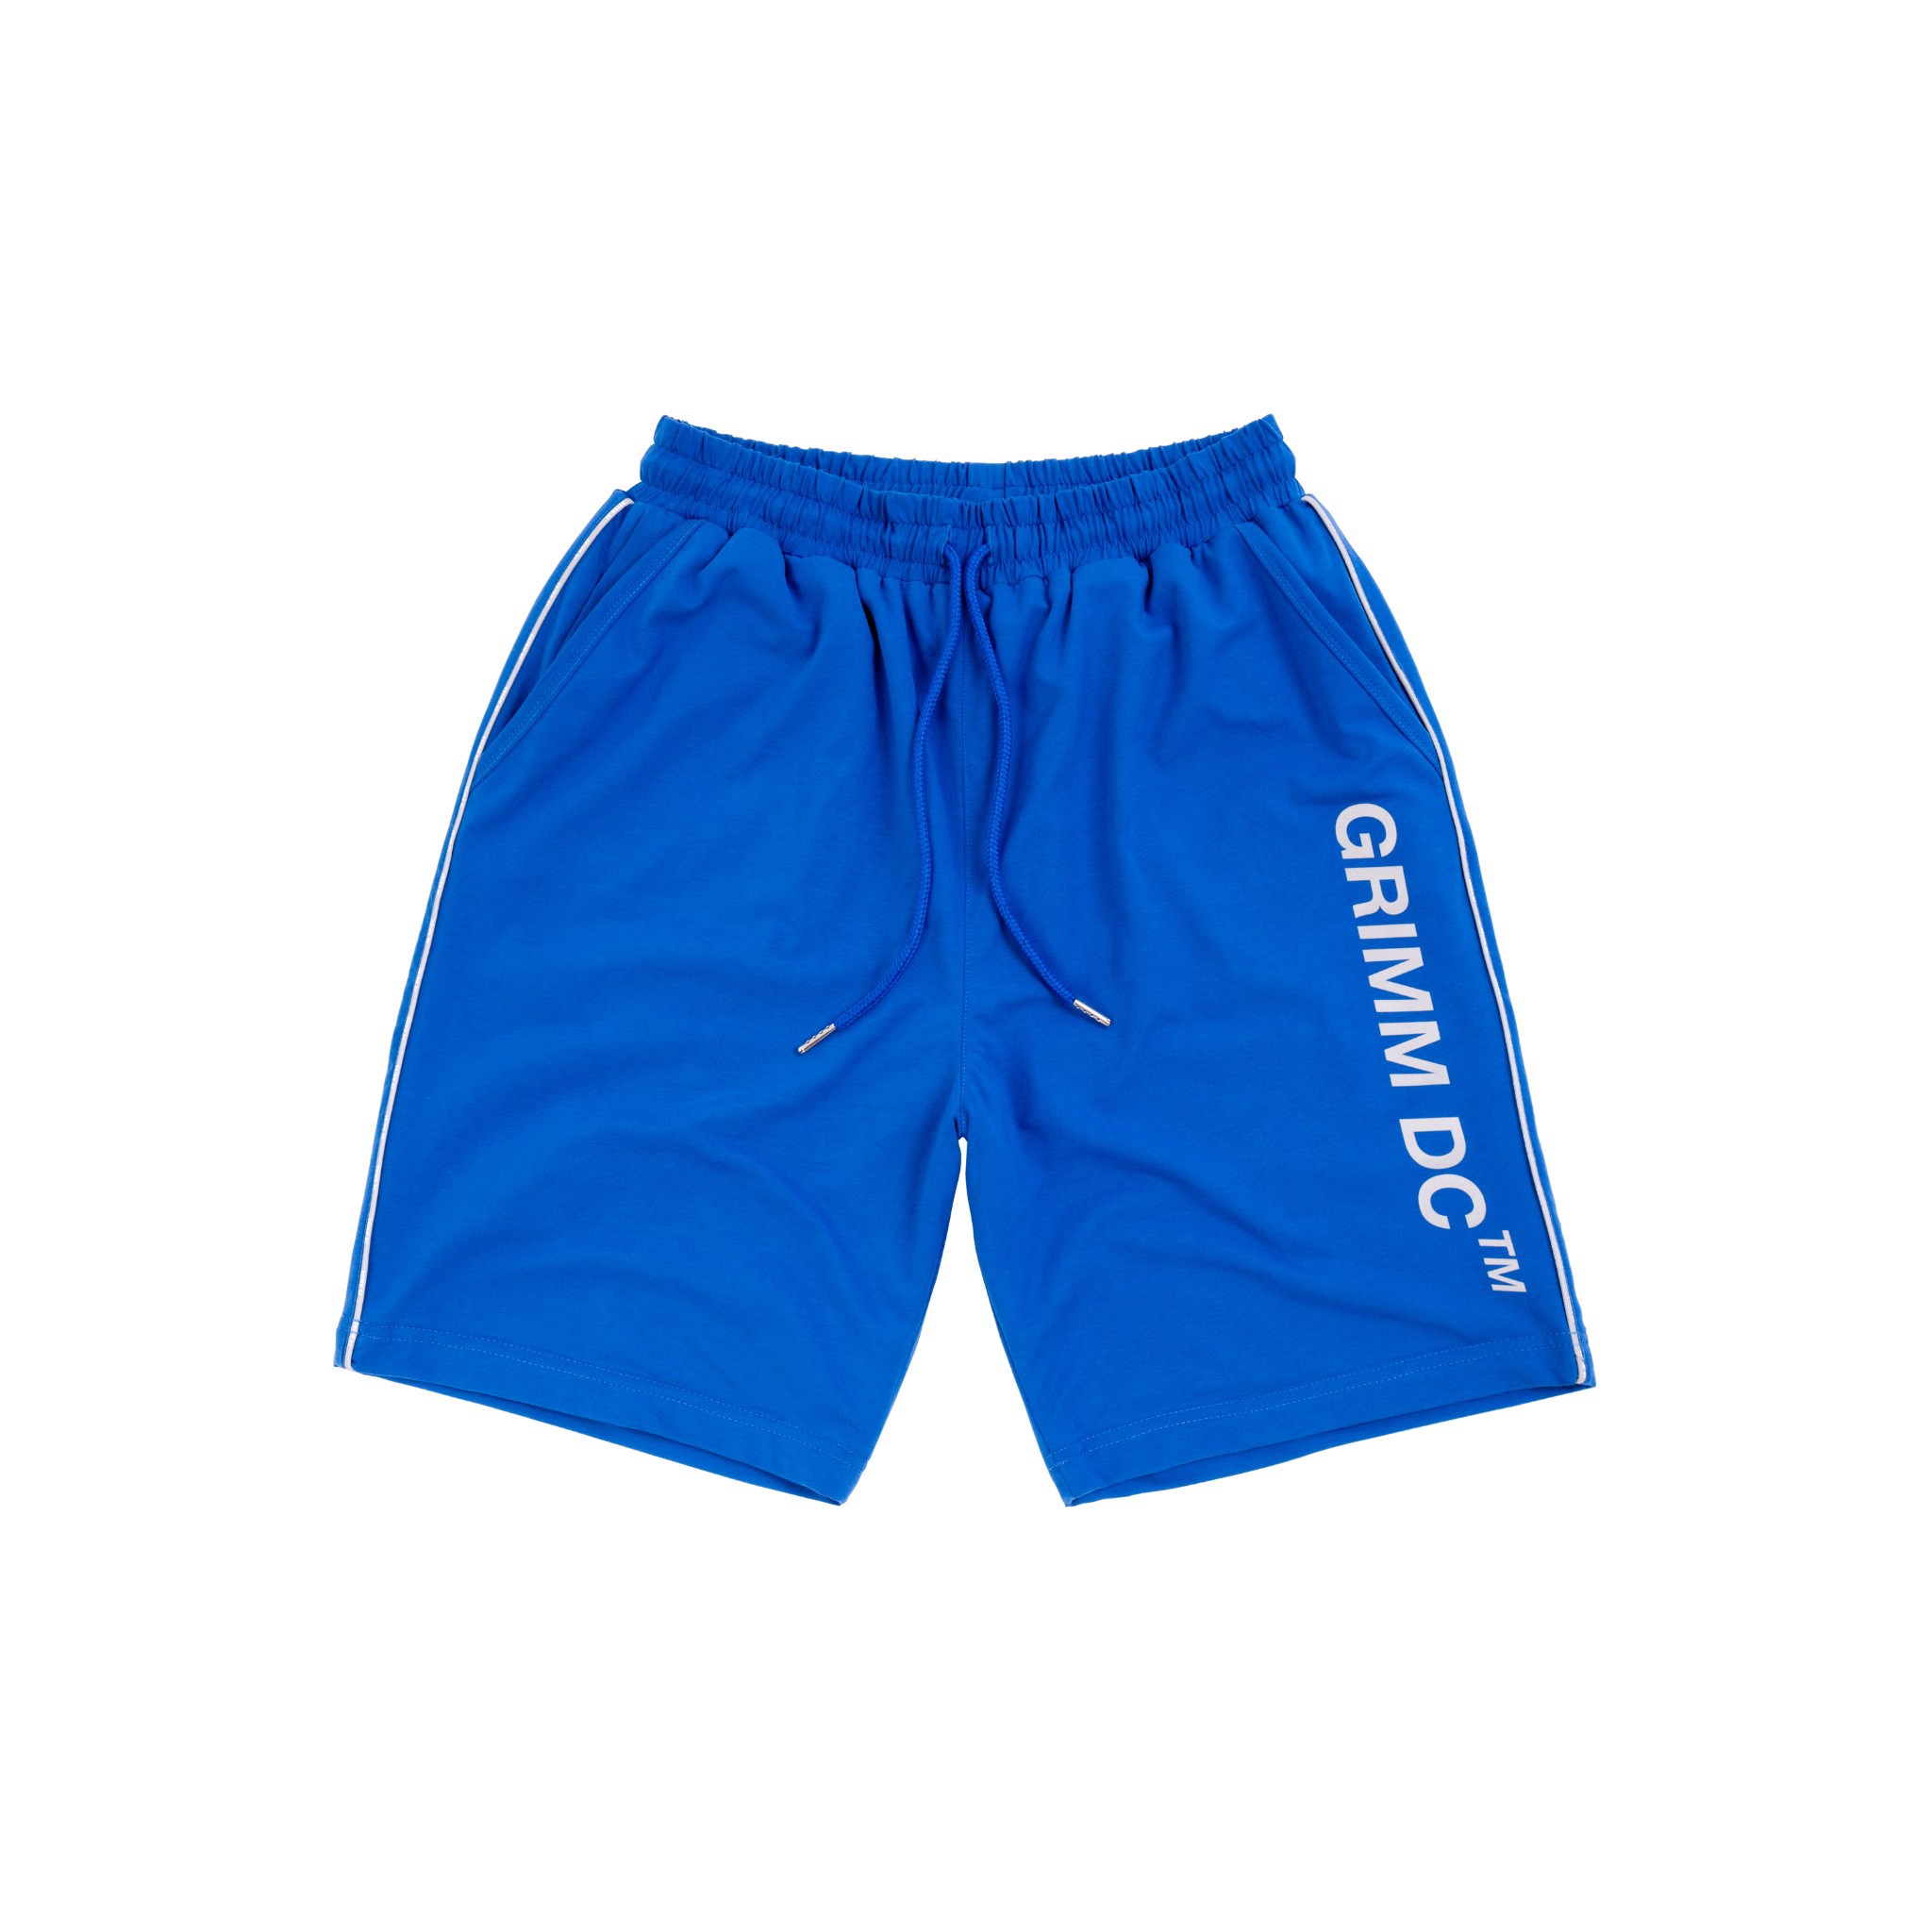 Summer Puzzle Shorts - Blue